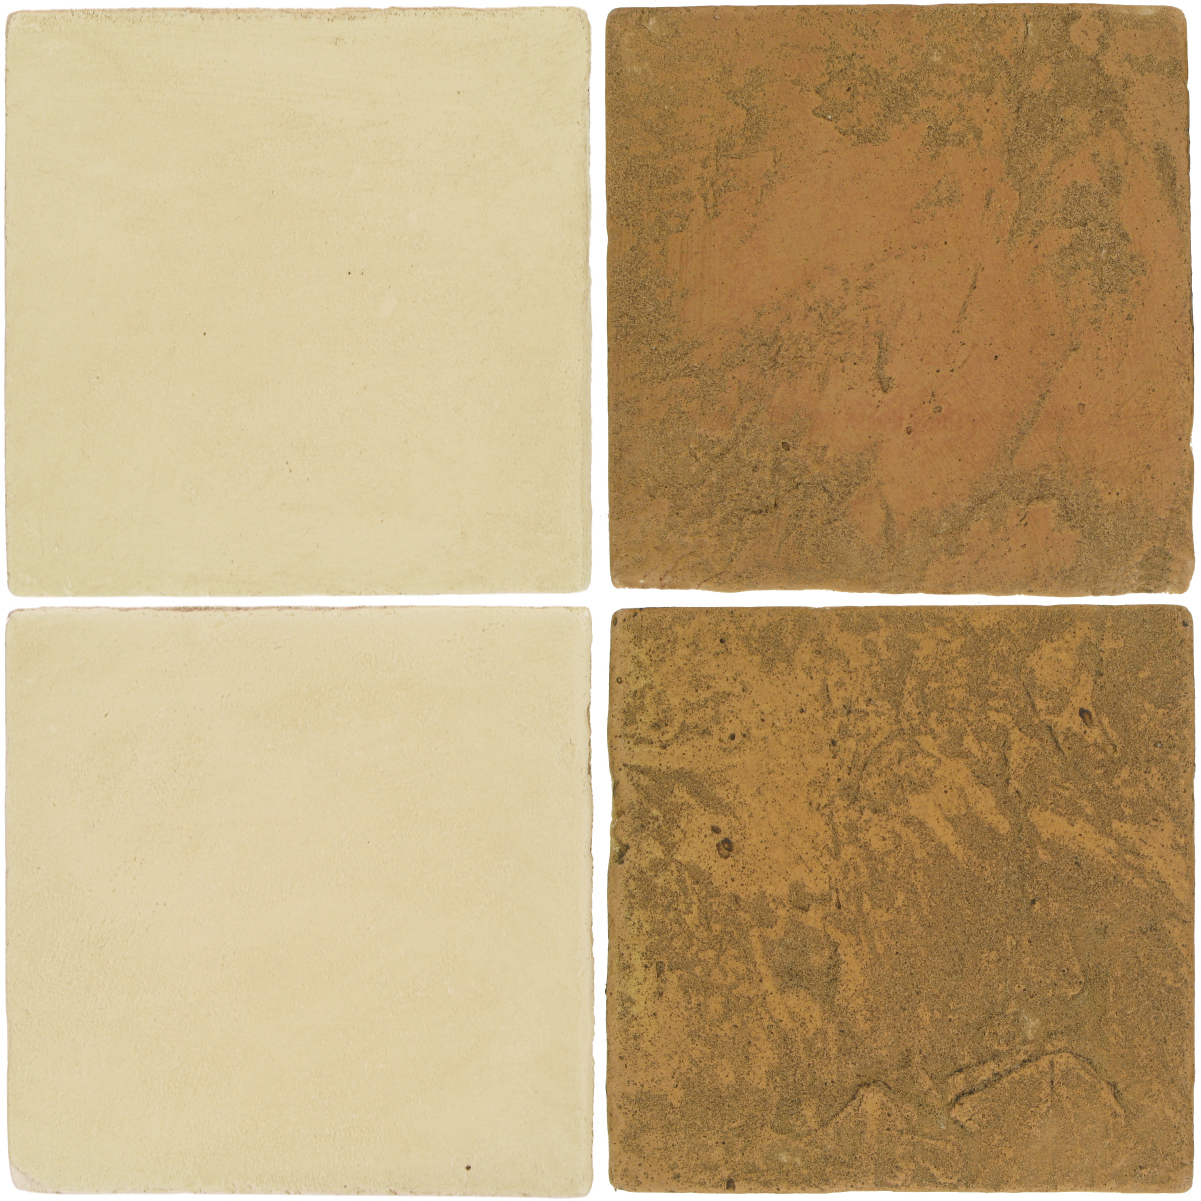 Pedralbes Antique Terracotta  2 Color Combinations  OHS-PGPW Pergamino White + VTG-PSSW Siena Wheat